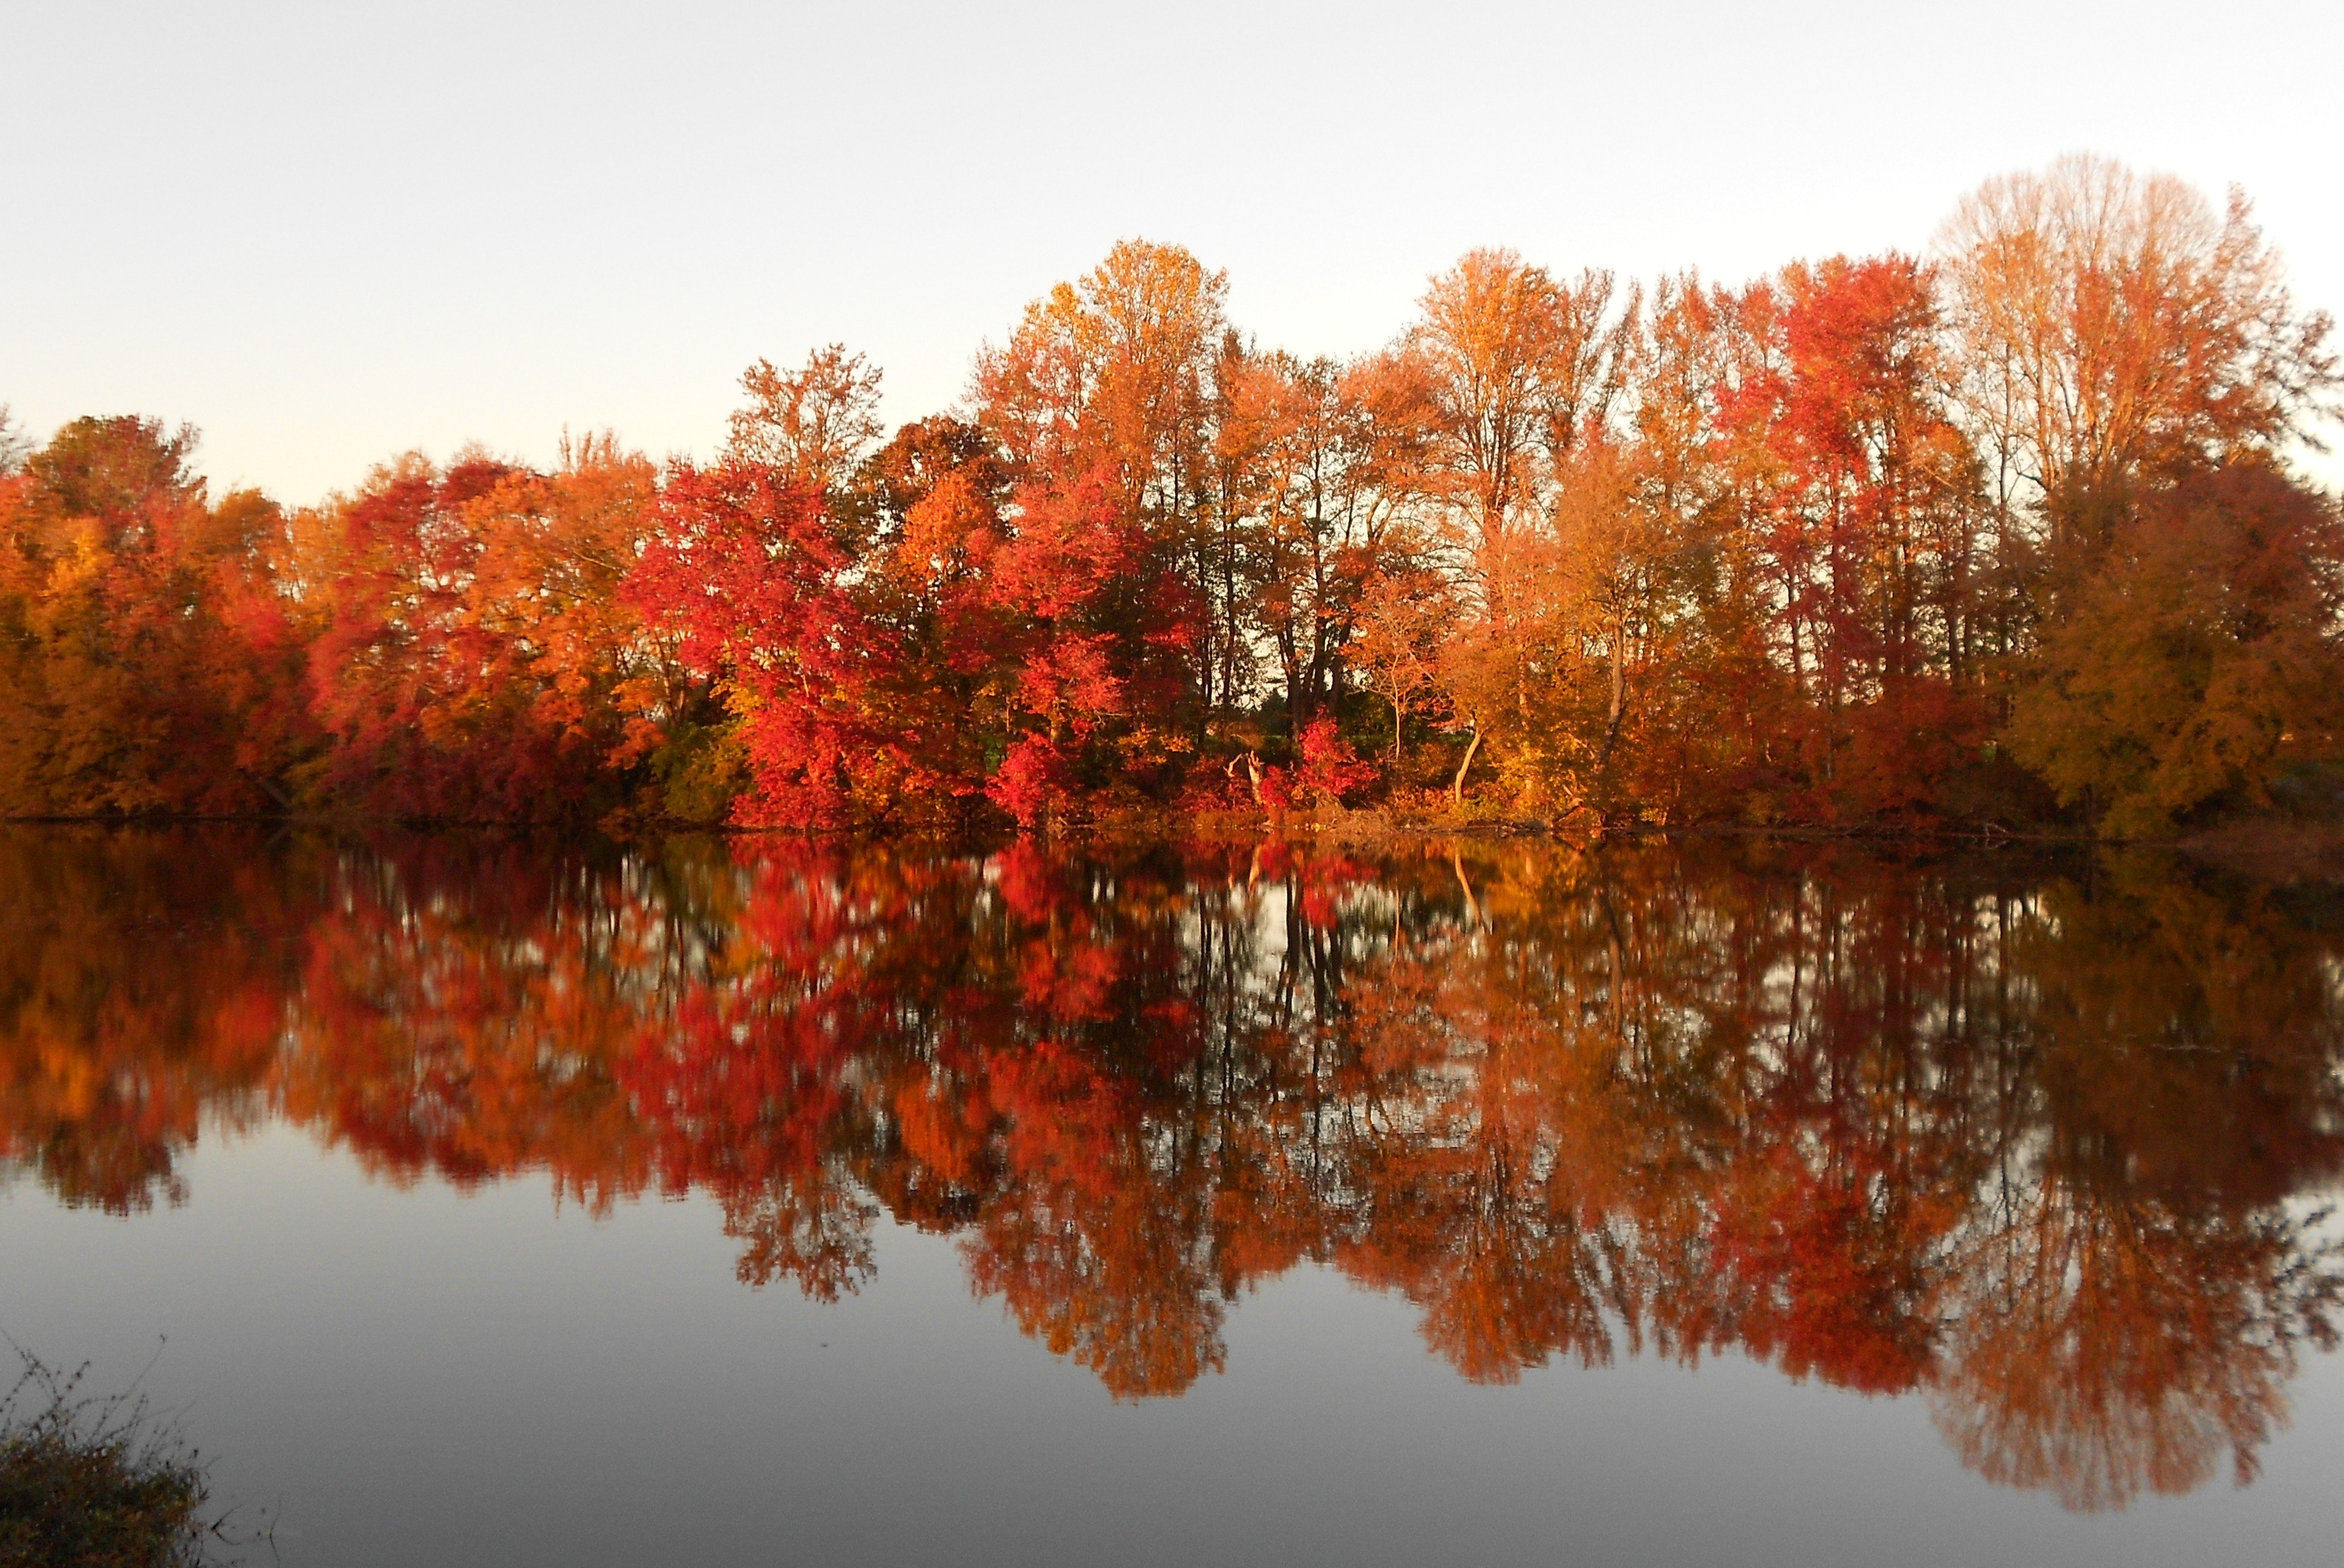 Fall Foliage at Lums Pond State Park